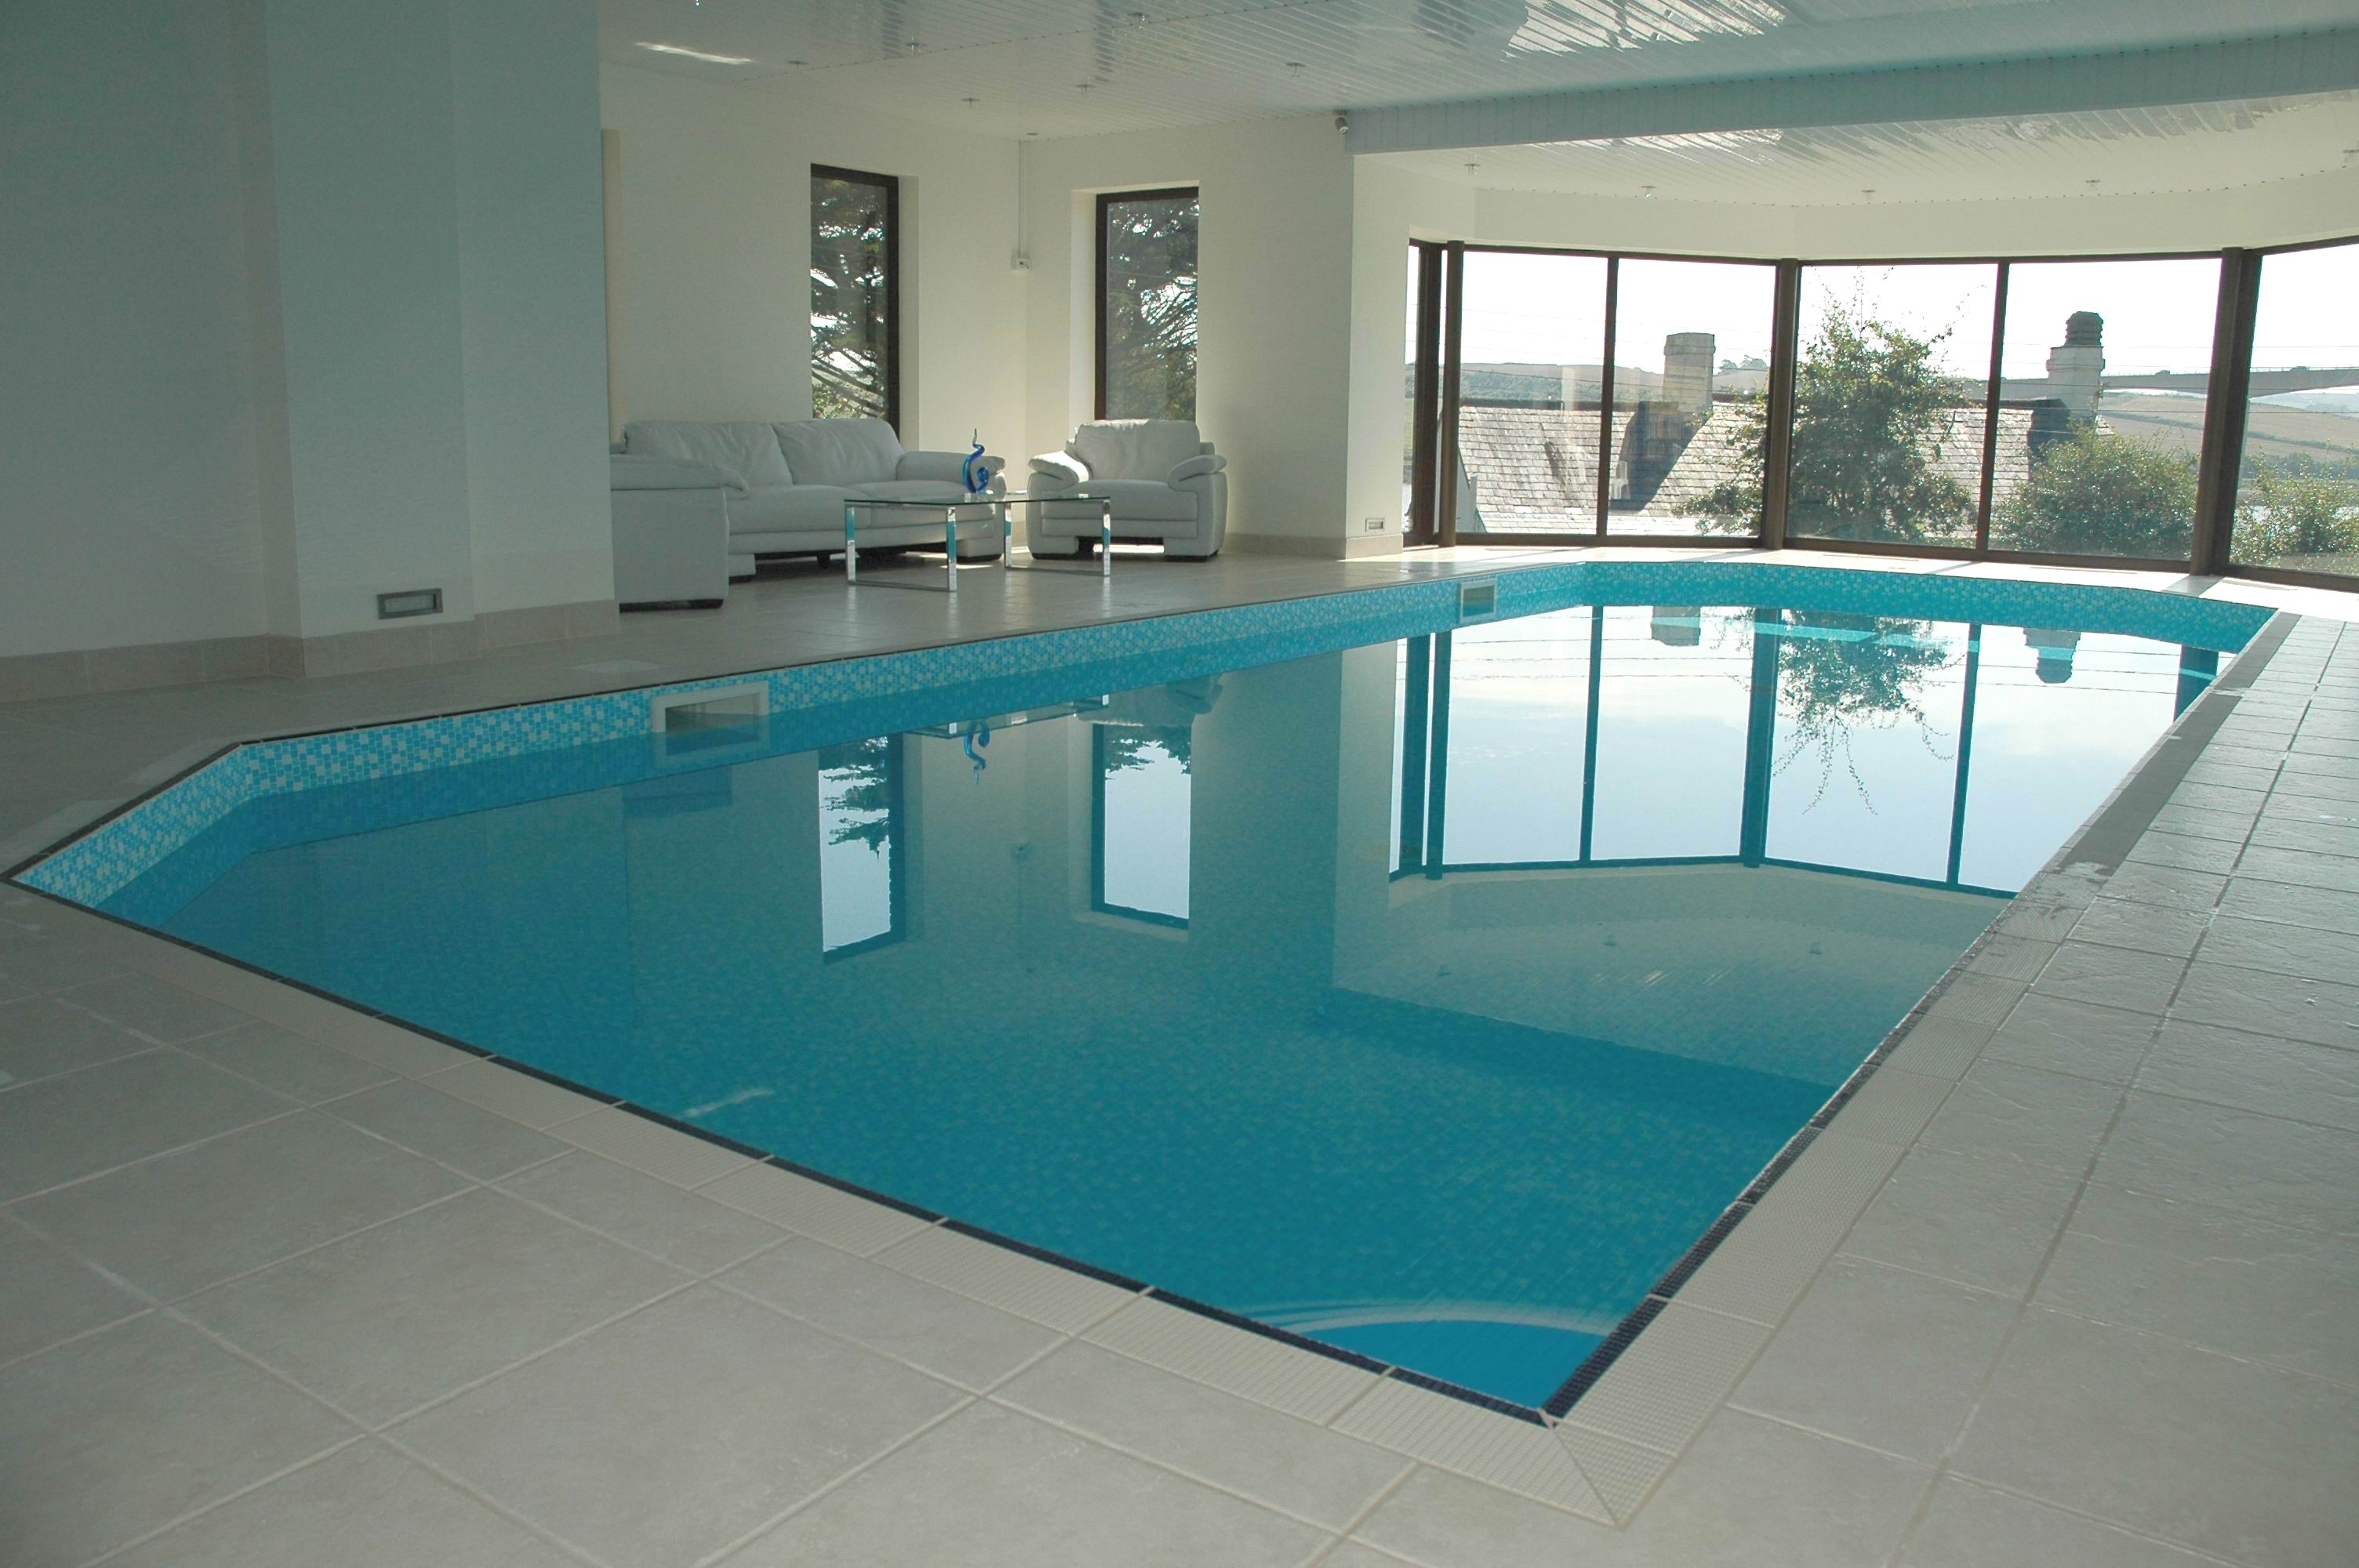 Pool towards windows lighter